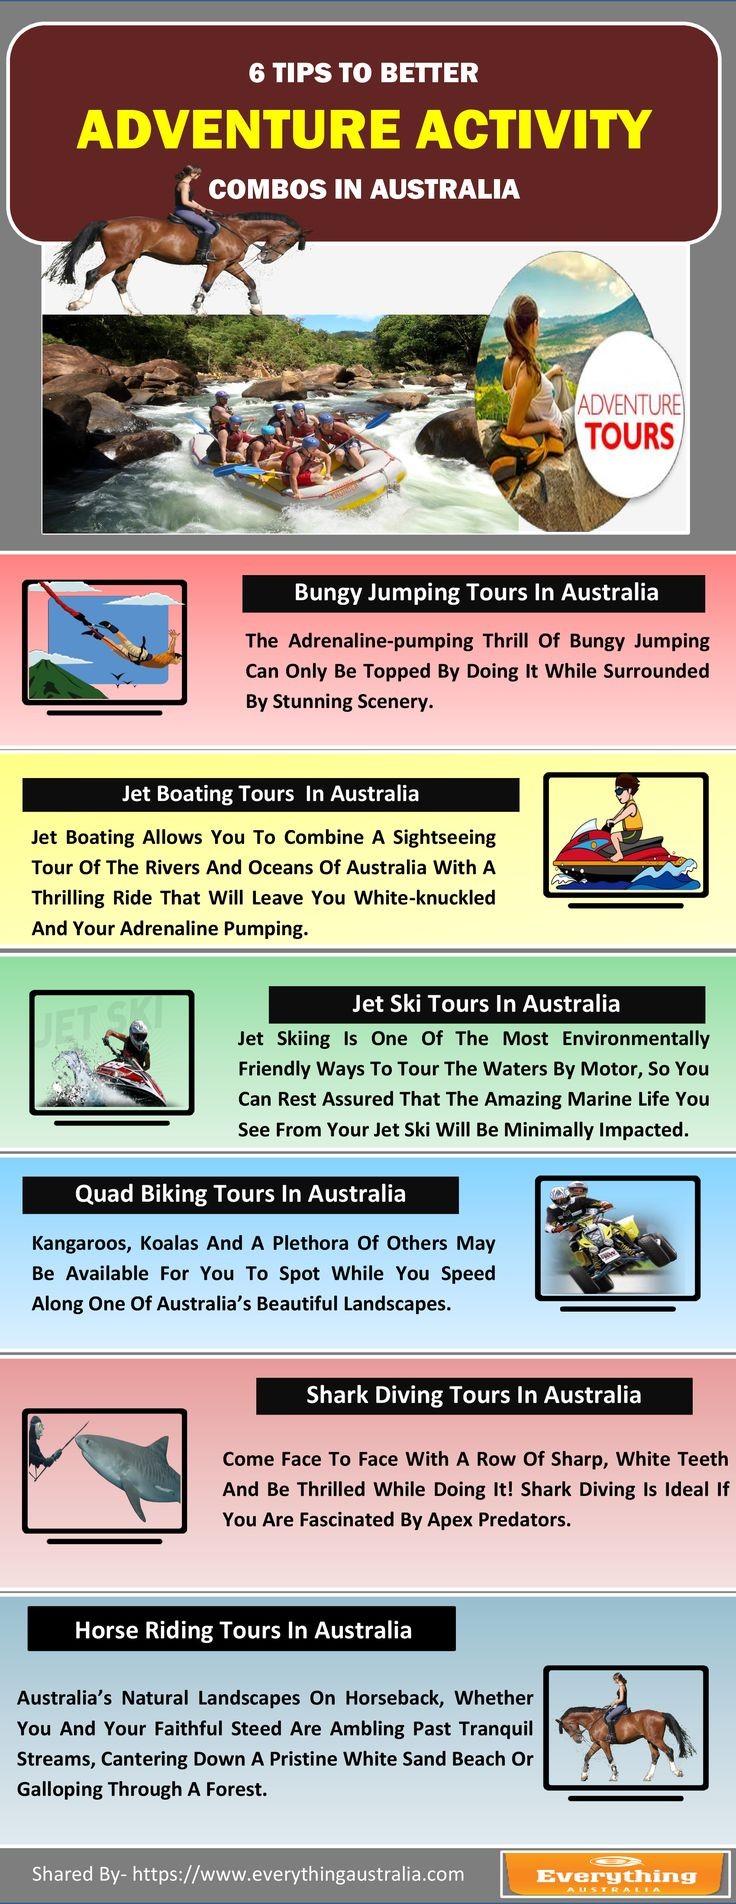 Jet skiing is one of the most environmentally friendly ways to tour the waters by motor.